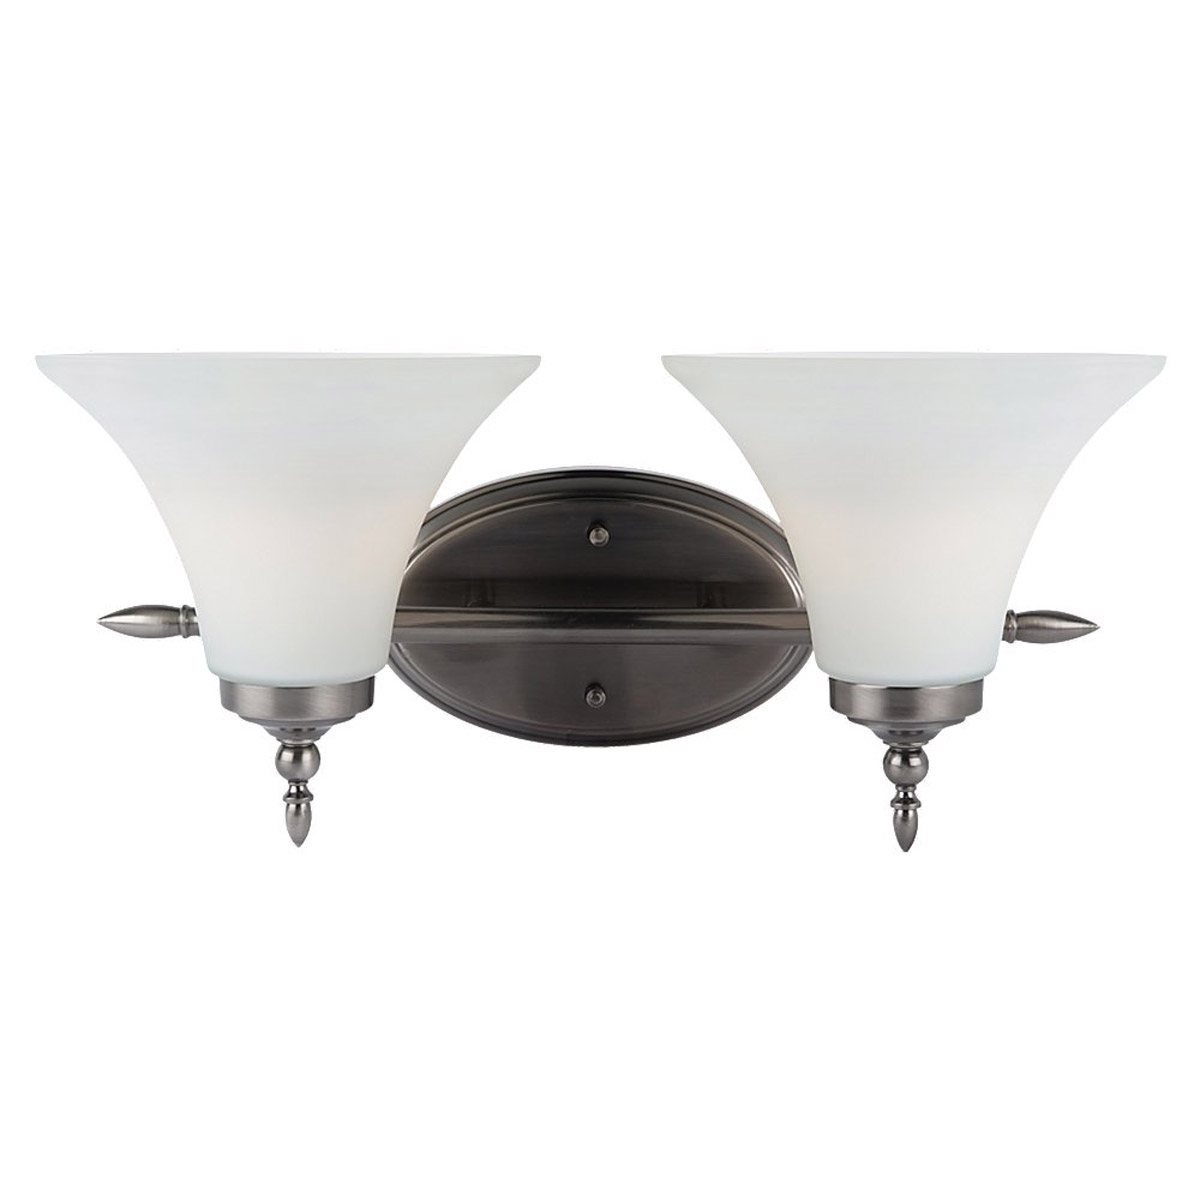 Sea Gull Lighting Montreal 2 Light Bath Vanity in Antique Brushed Nickel 41181BLE-965